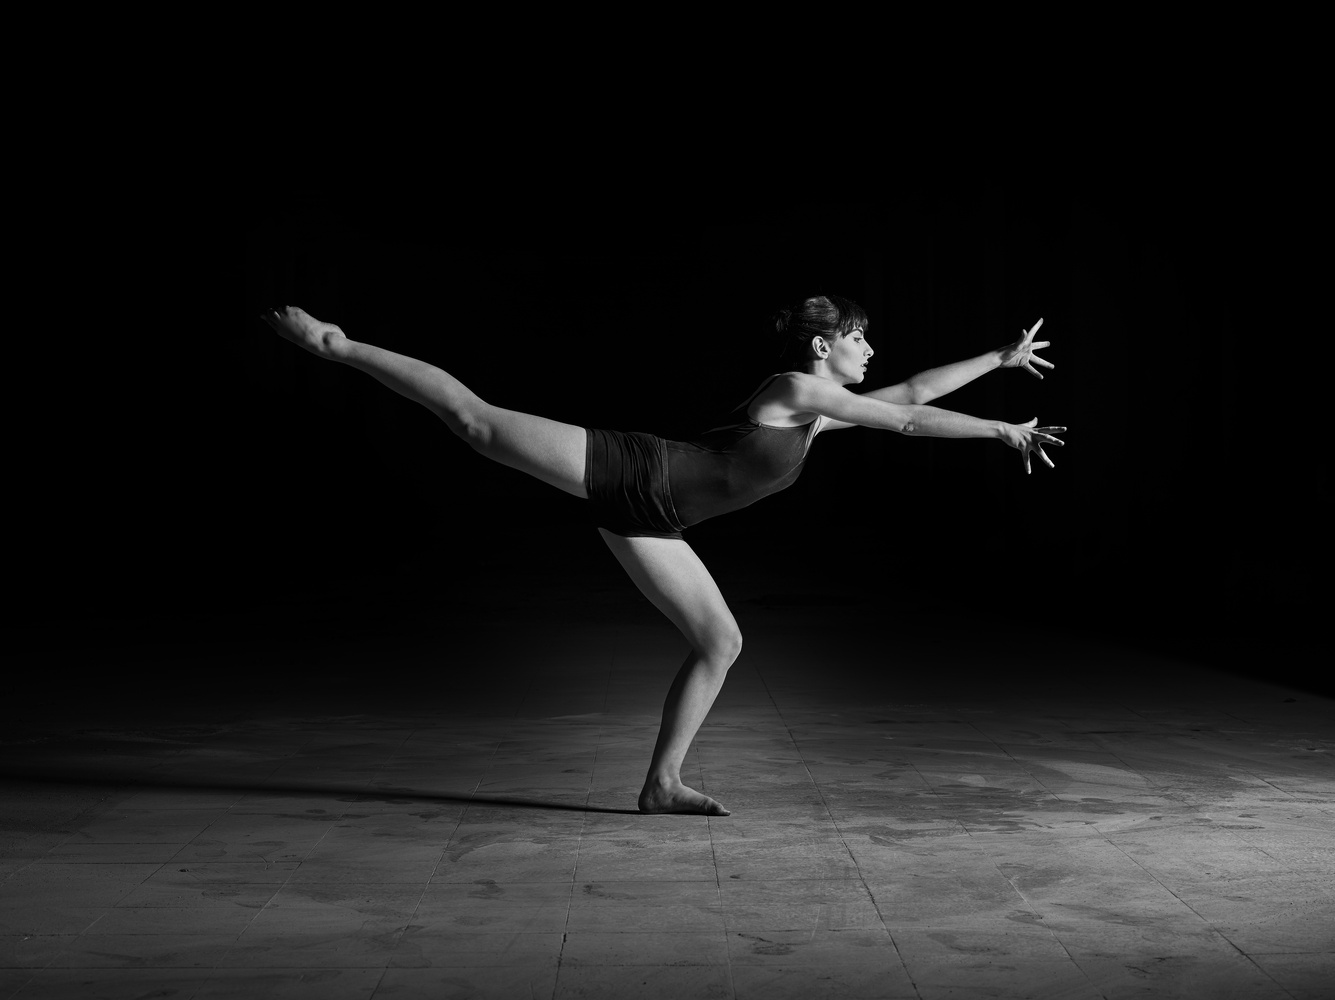 Come back to me - The Dancer Project by Adolfo Usier